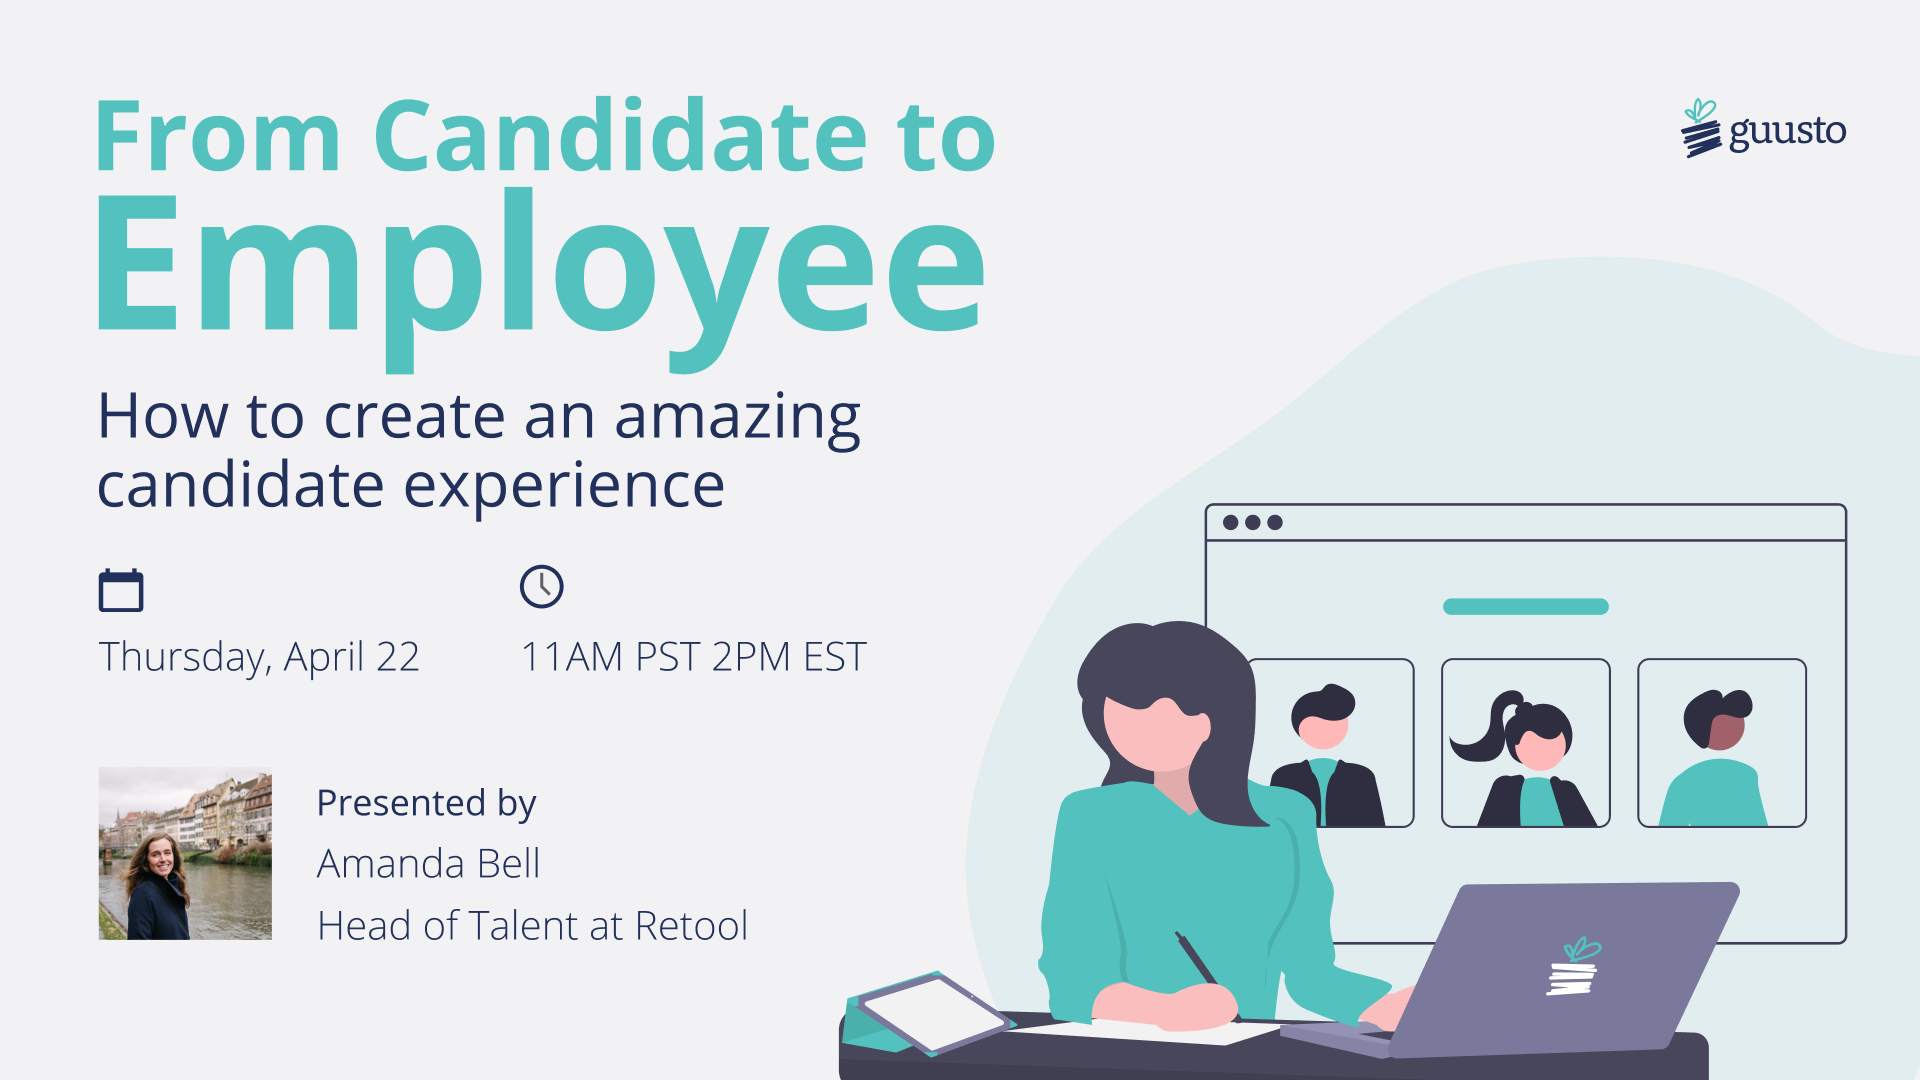 From Candidate to Employee: How to create an amazing candidate experience